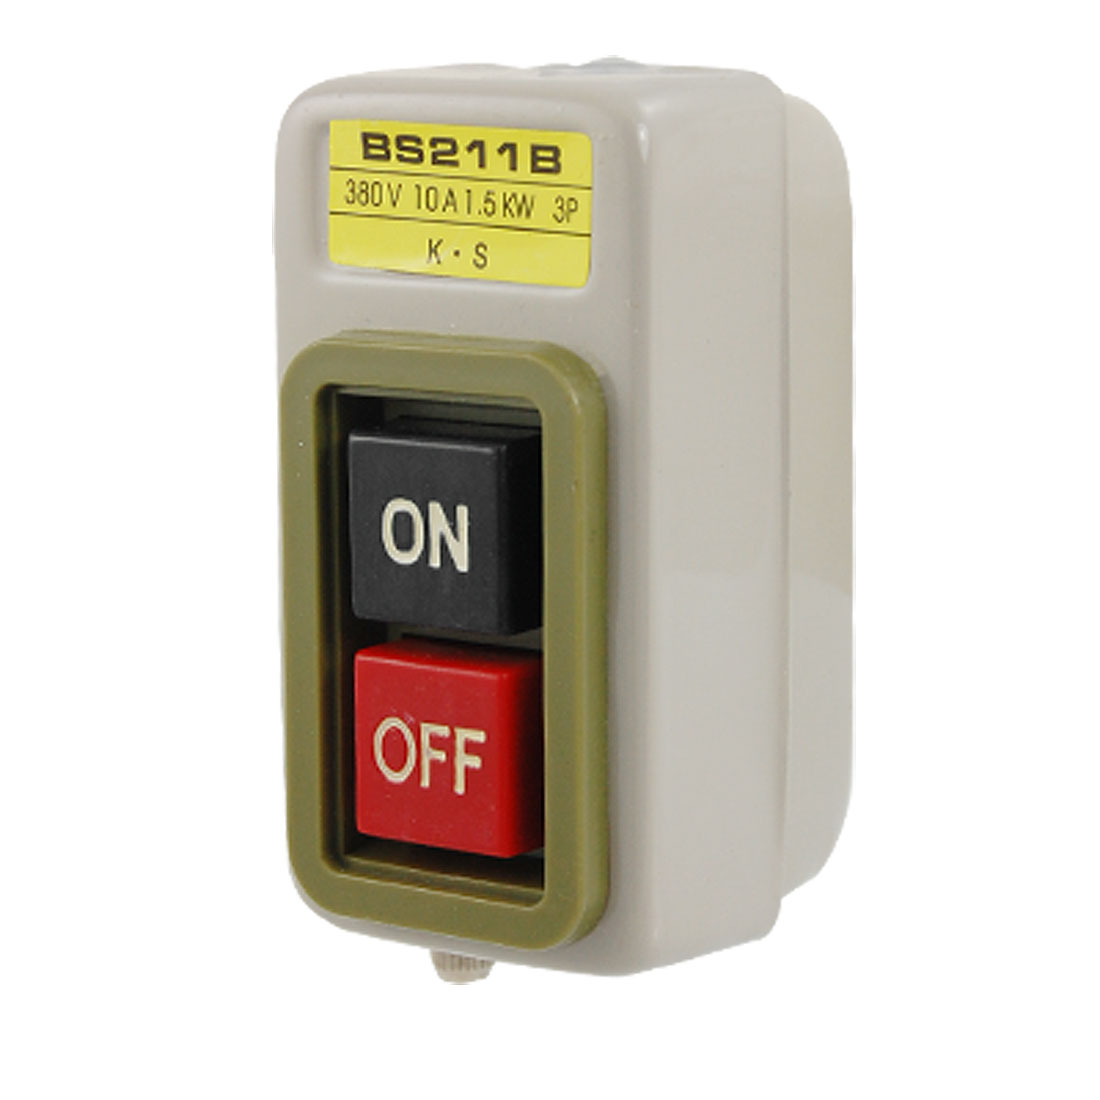 AC 380V 10A 1.5Kw ON OFF Control Push Button Switch